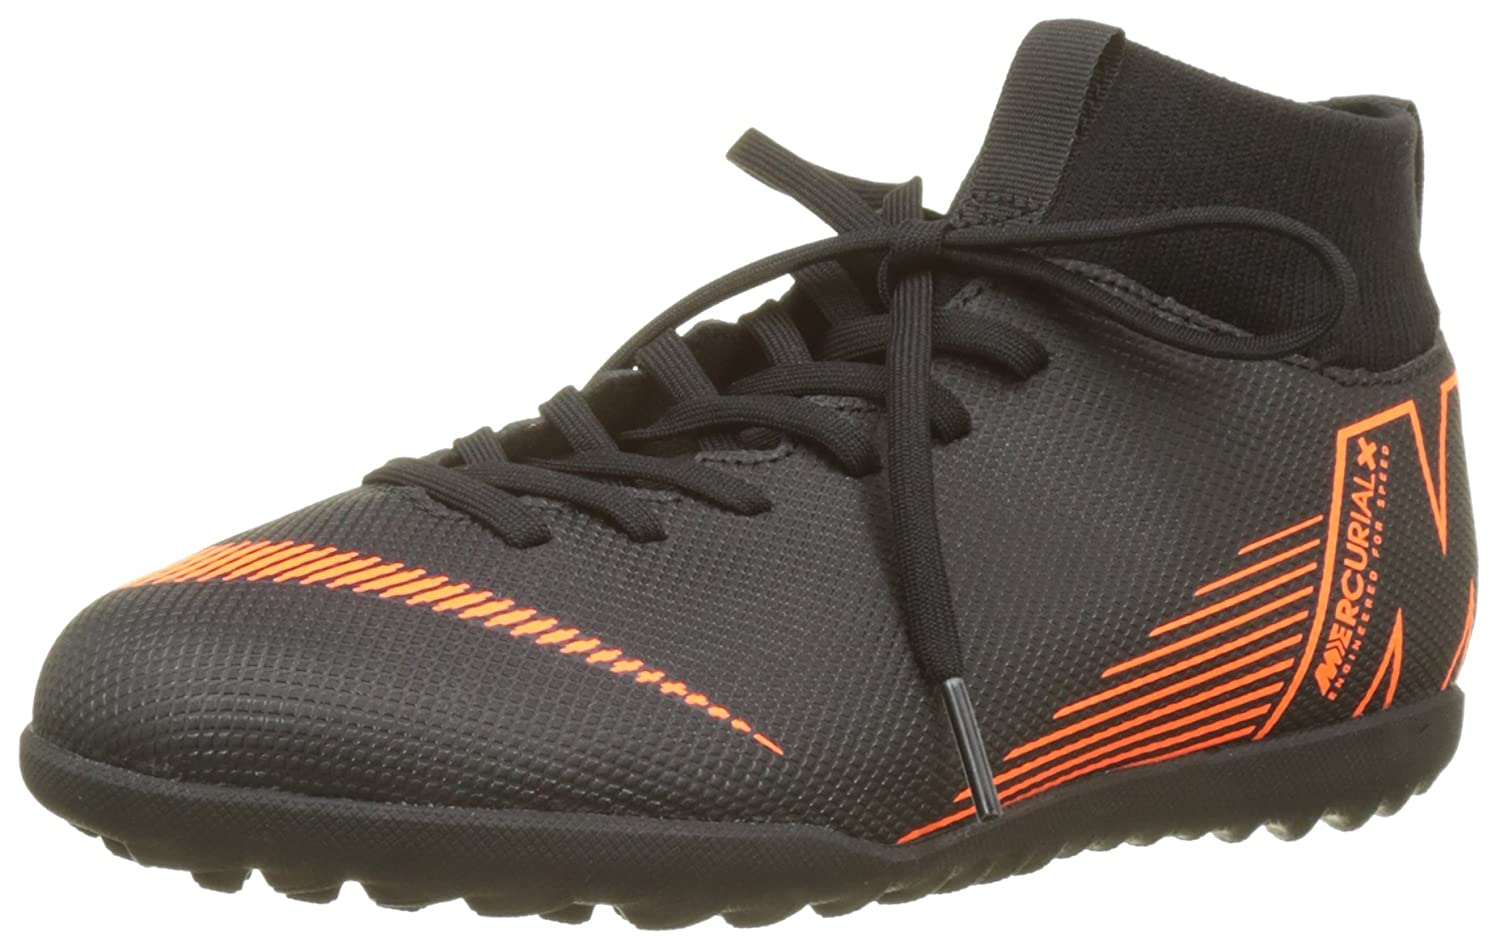 Nike Jr Superflyx 6 Club TF, Zapatillas de Deporte Unisex Adulto 38.5 EU|Multicolor (Black/Total Orange-w 081)